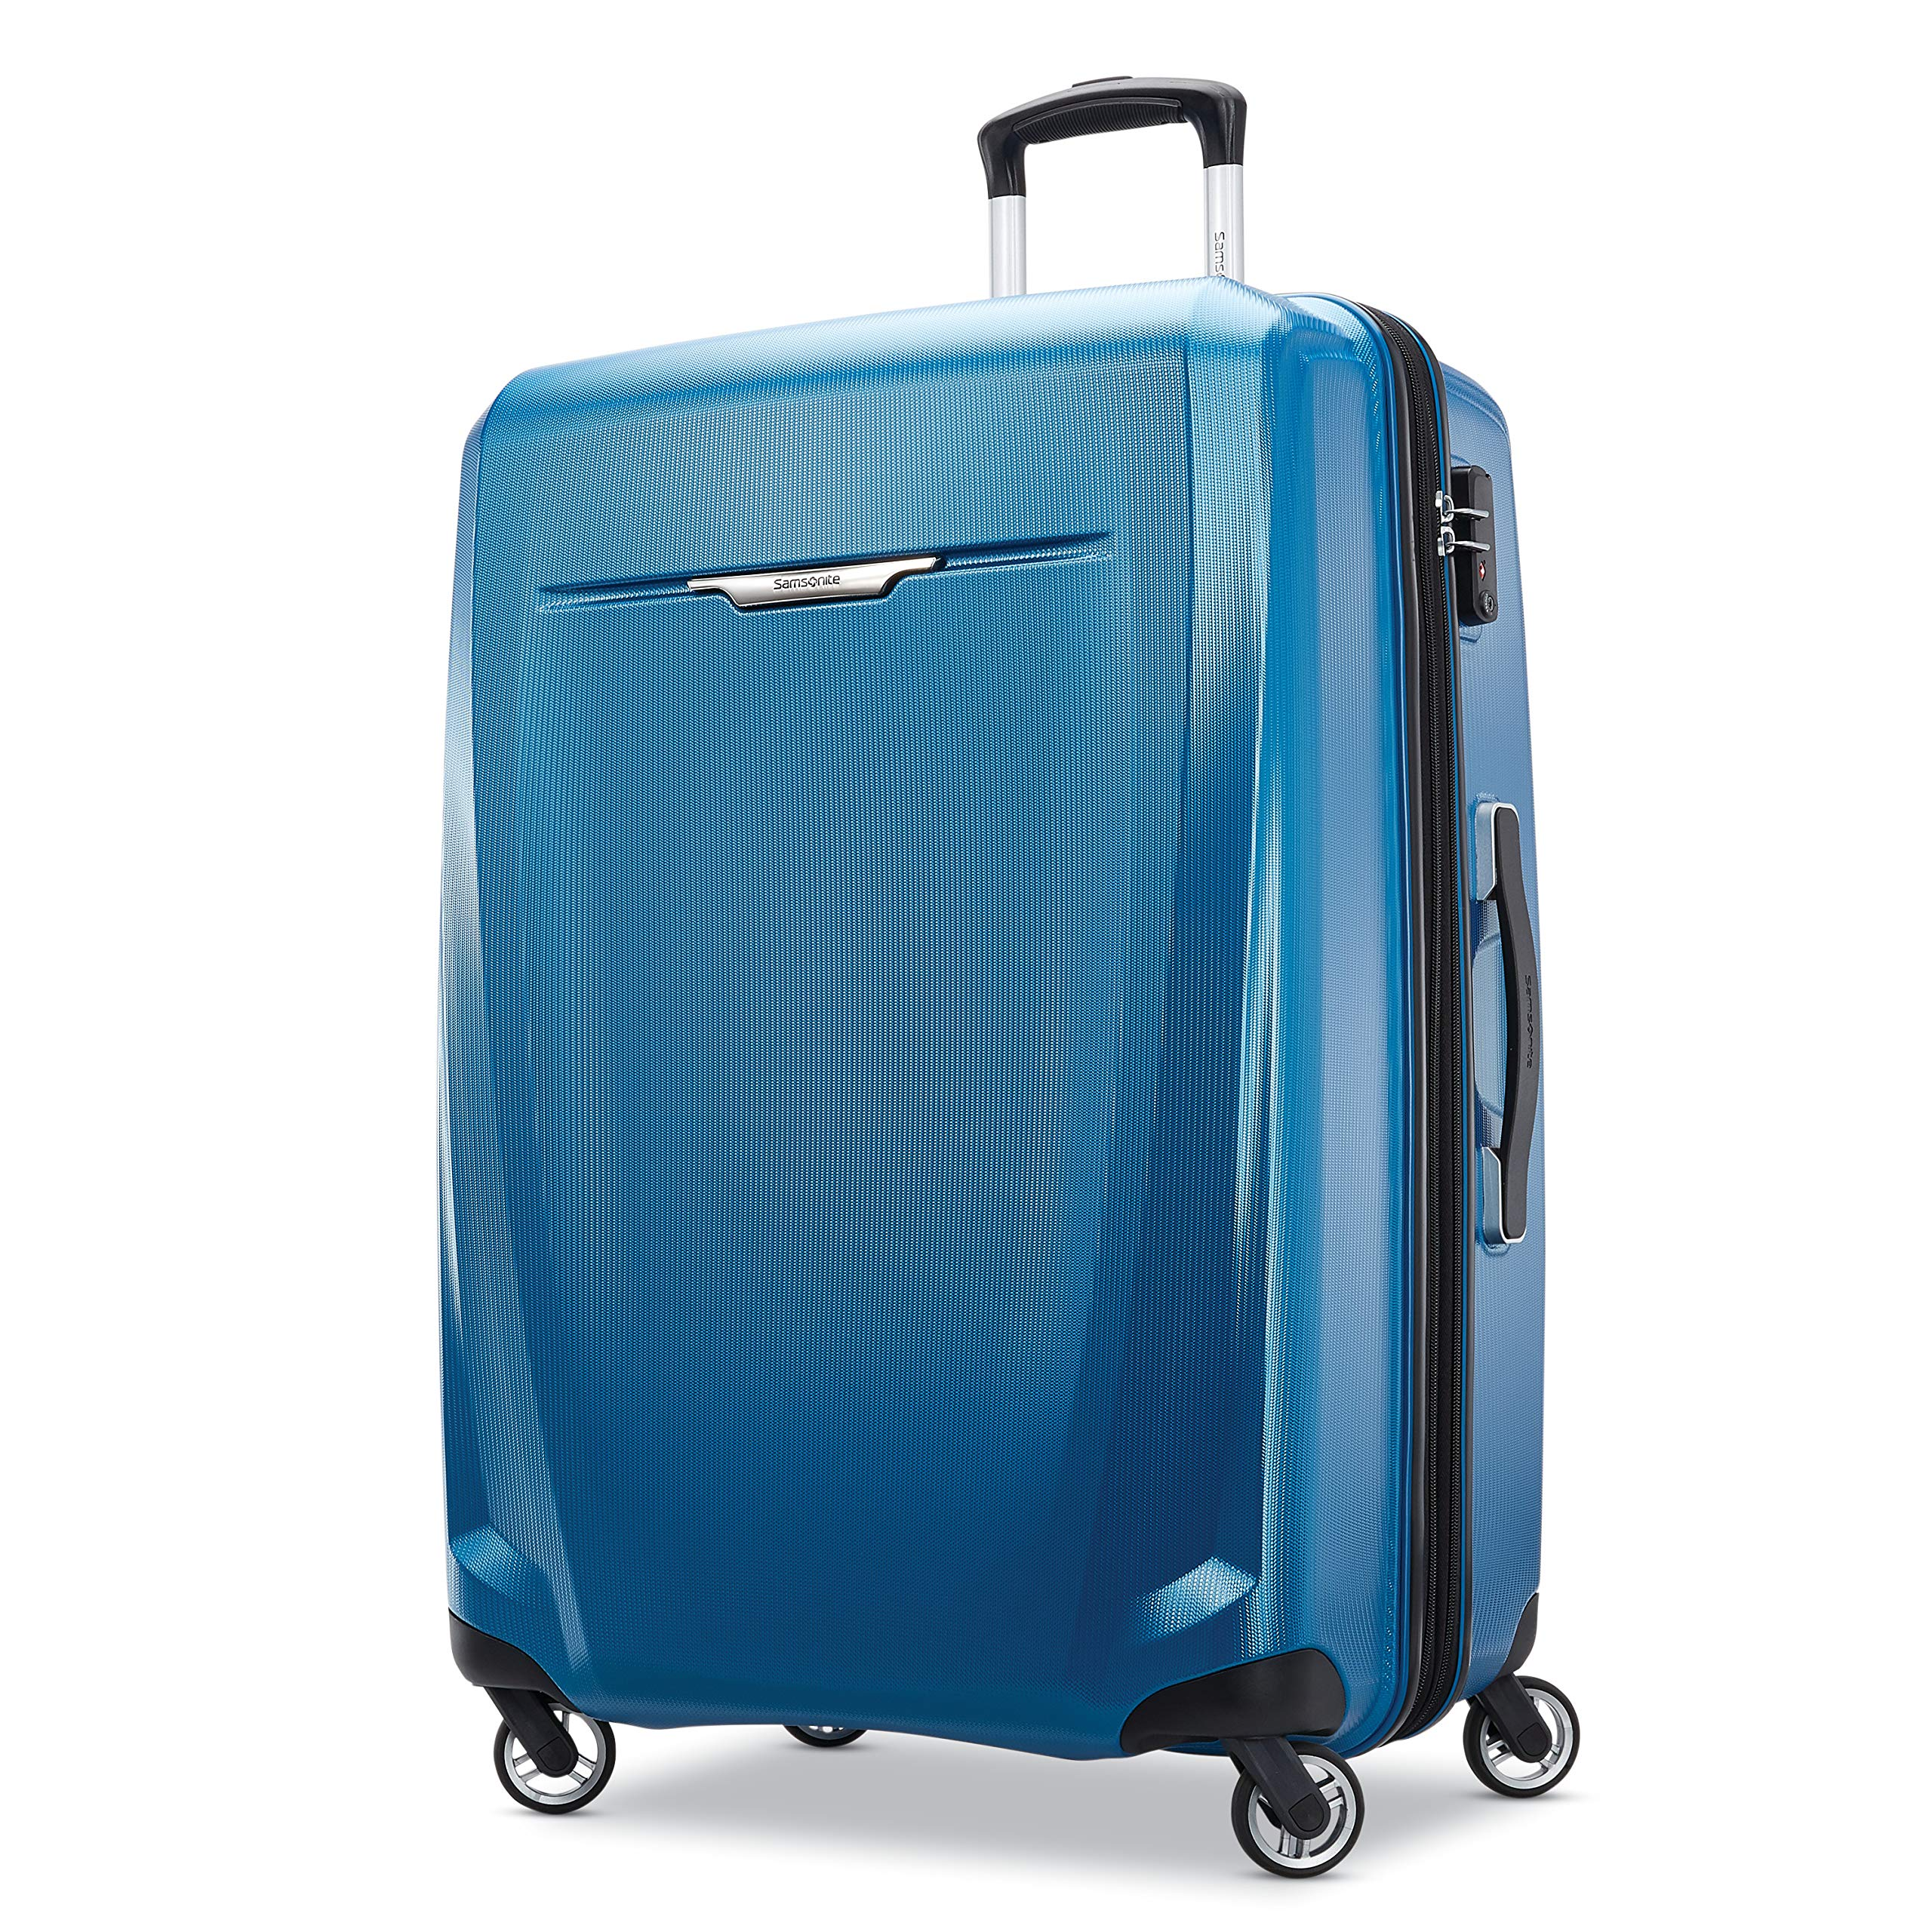 Samsonite Winfield 3 DLX Hardside Checked Luggage with Spinner Wheels, 28-Inch, Blue/Navy